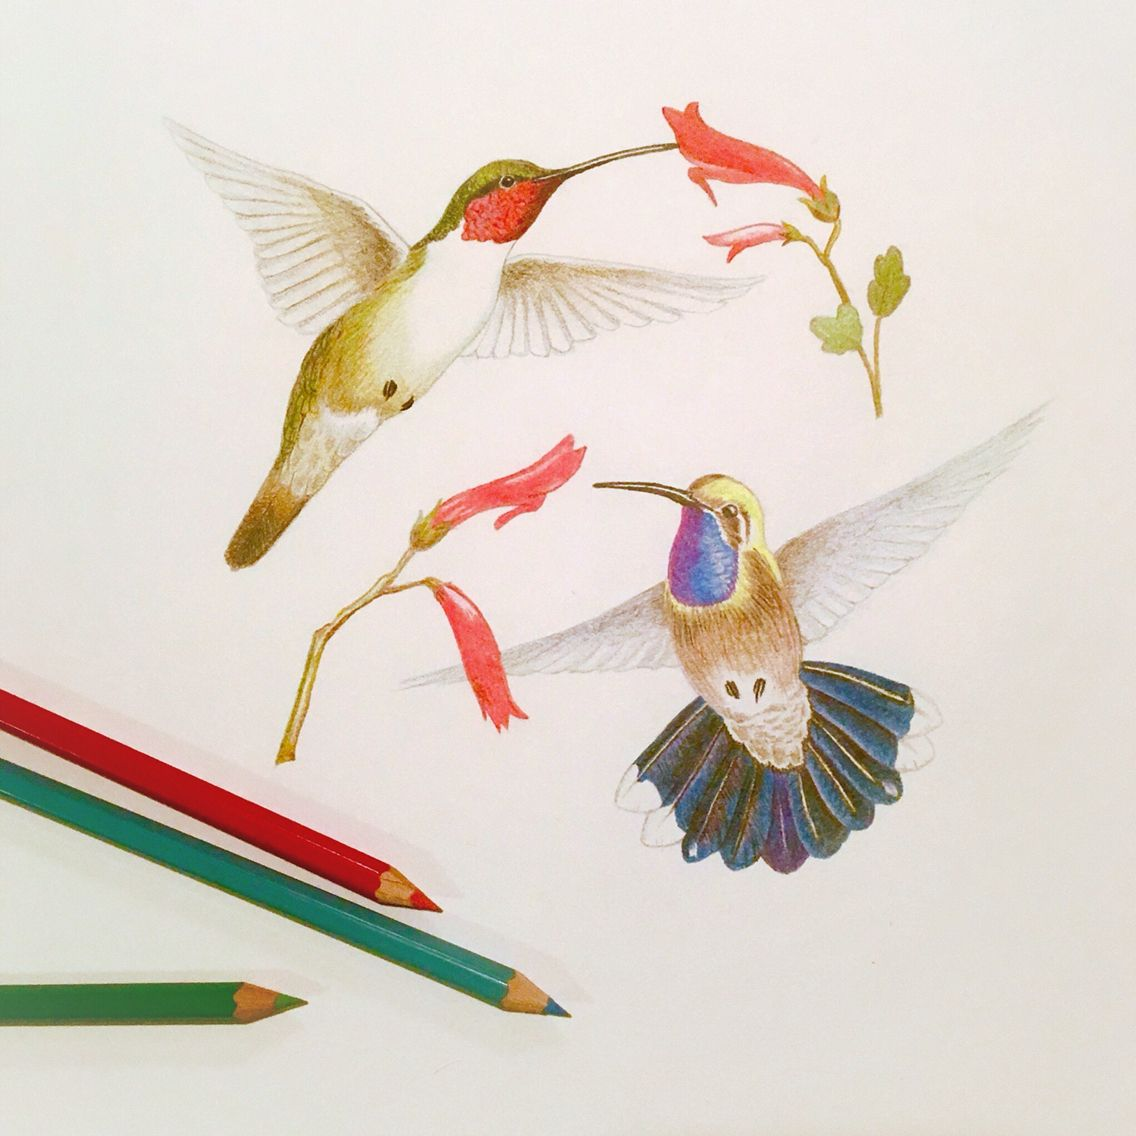 Hummingbirds Fine Art Giclee Print Colored Pencil Drawing Fine Art Giclee Prints Artwork Colored Pencil Drawing